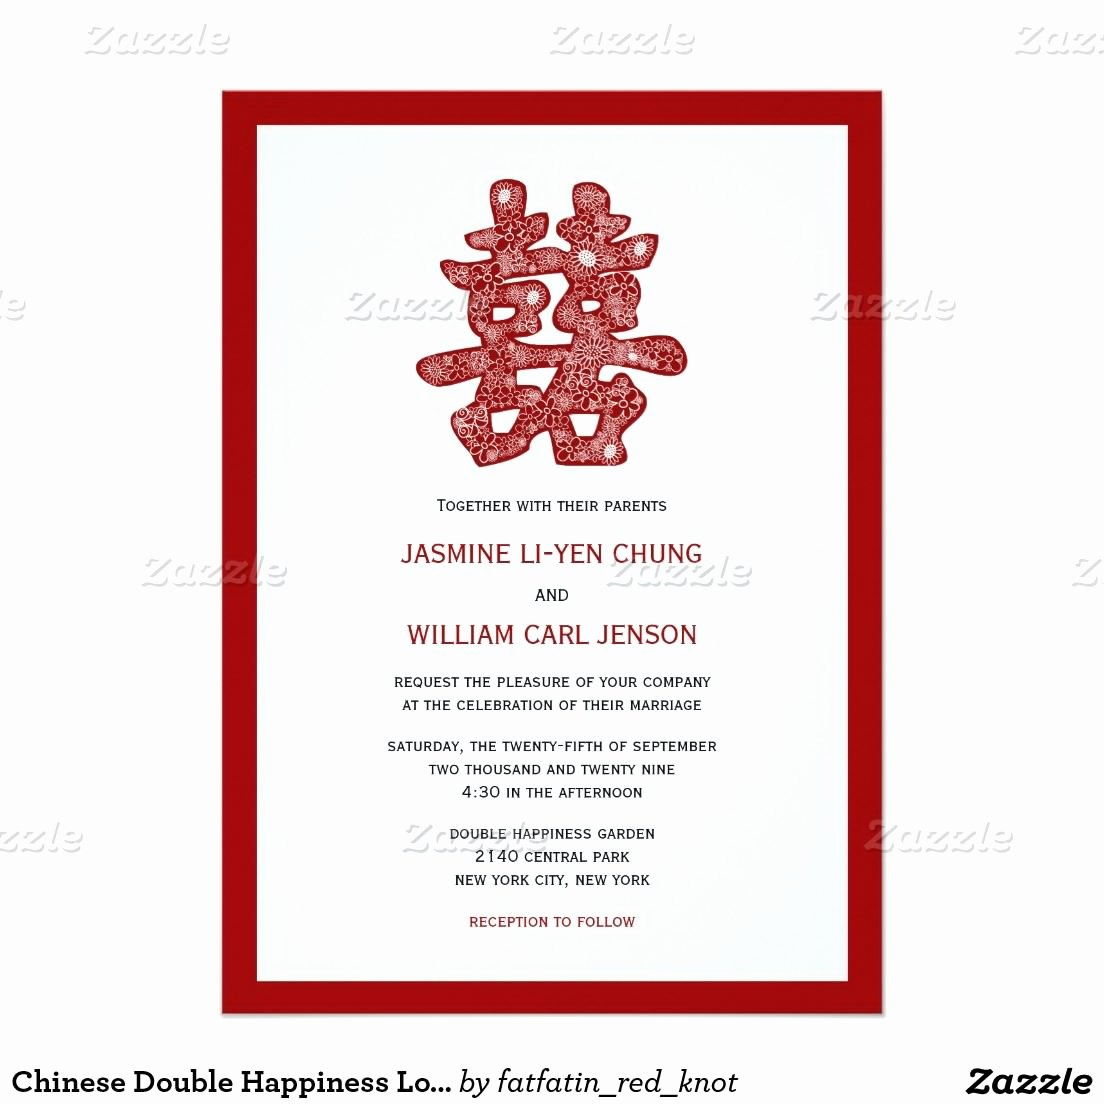 Chinese Wedding Invitations Template New Chinese Wedding Invitations Wording Template Weddi